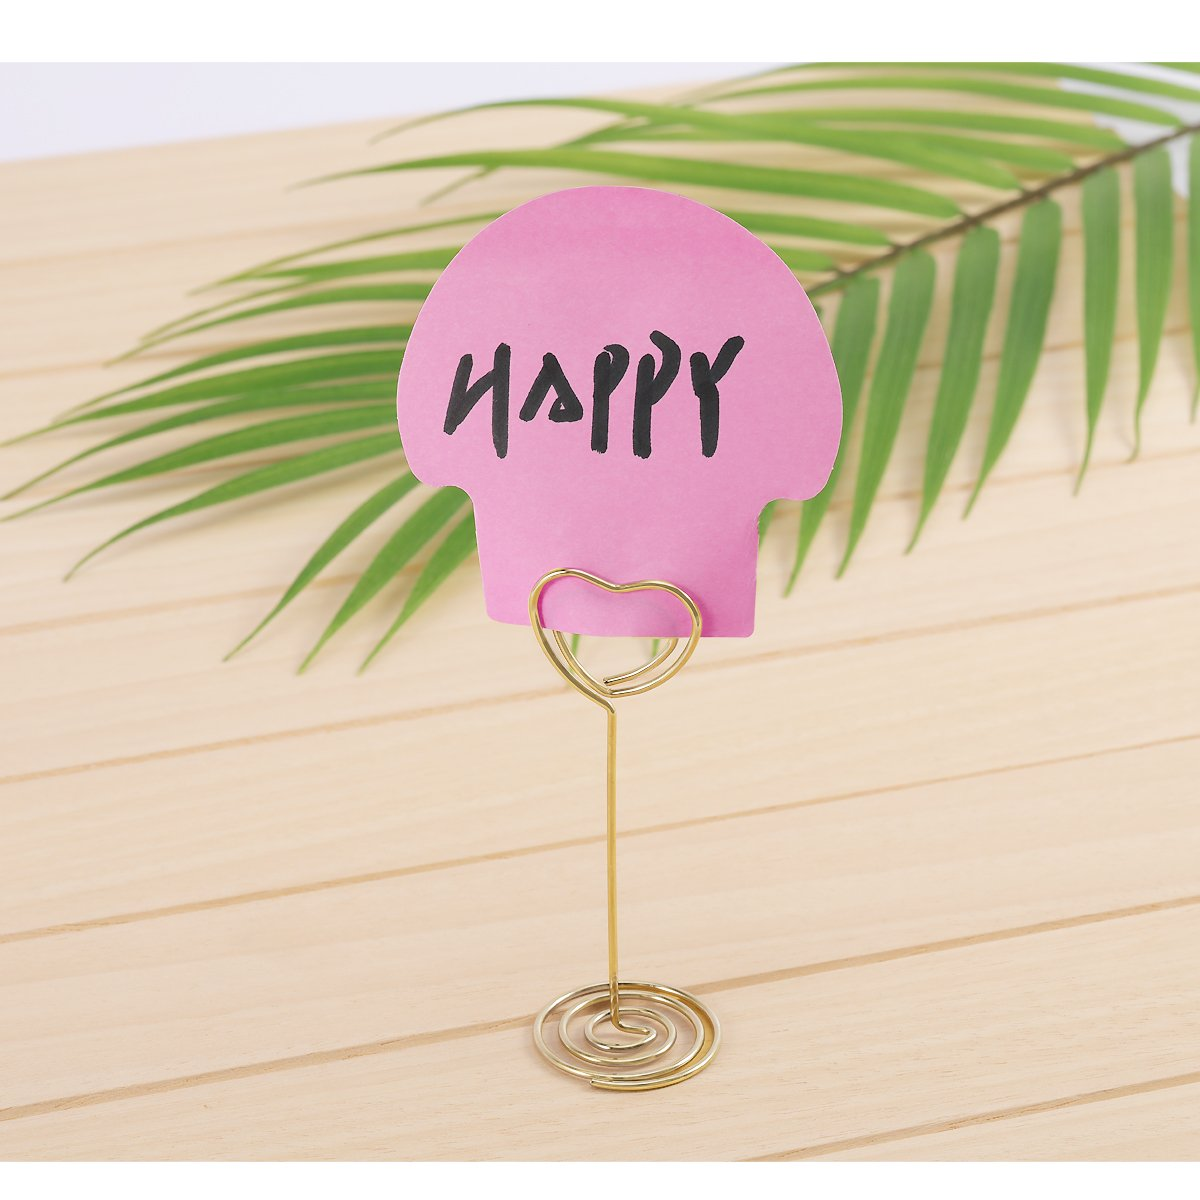 Table Photo Holder - Aieve 24 Pack Love Heart Shape Table Number Holders Place Card Holders Menu Clips Holders Stand for Wedding Party Gatherings Office Desk Memo Menu Table Photo Clips(Gold) by Aieve (Image #6)